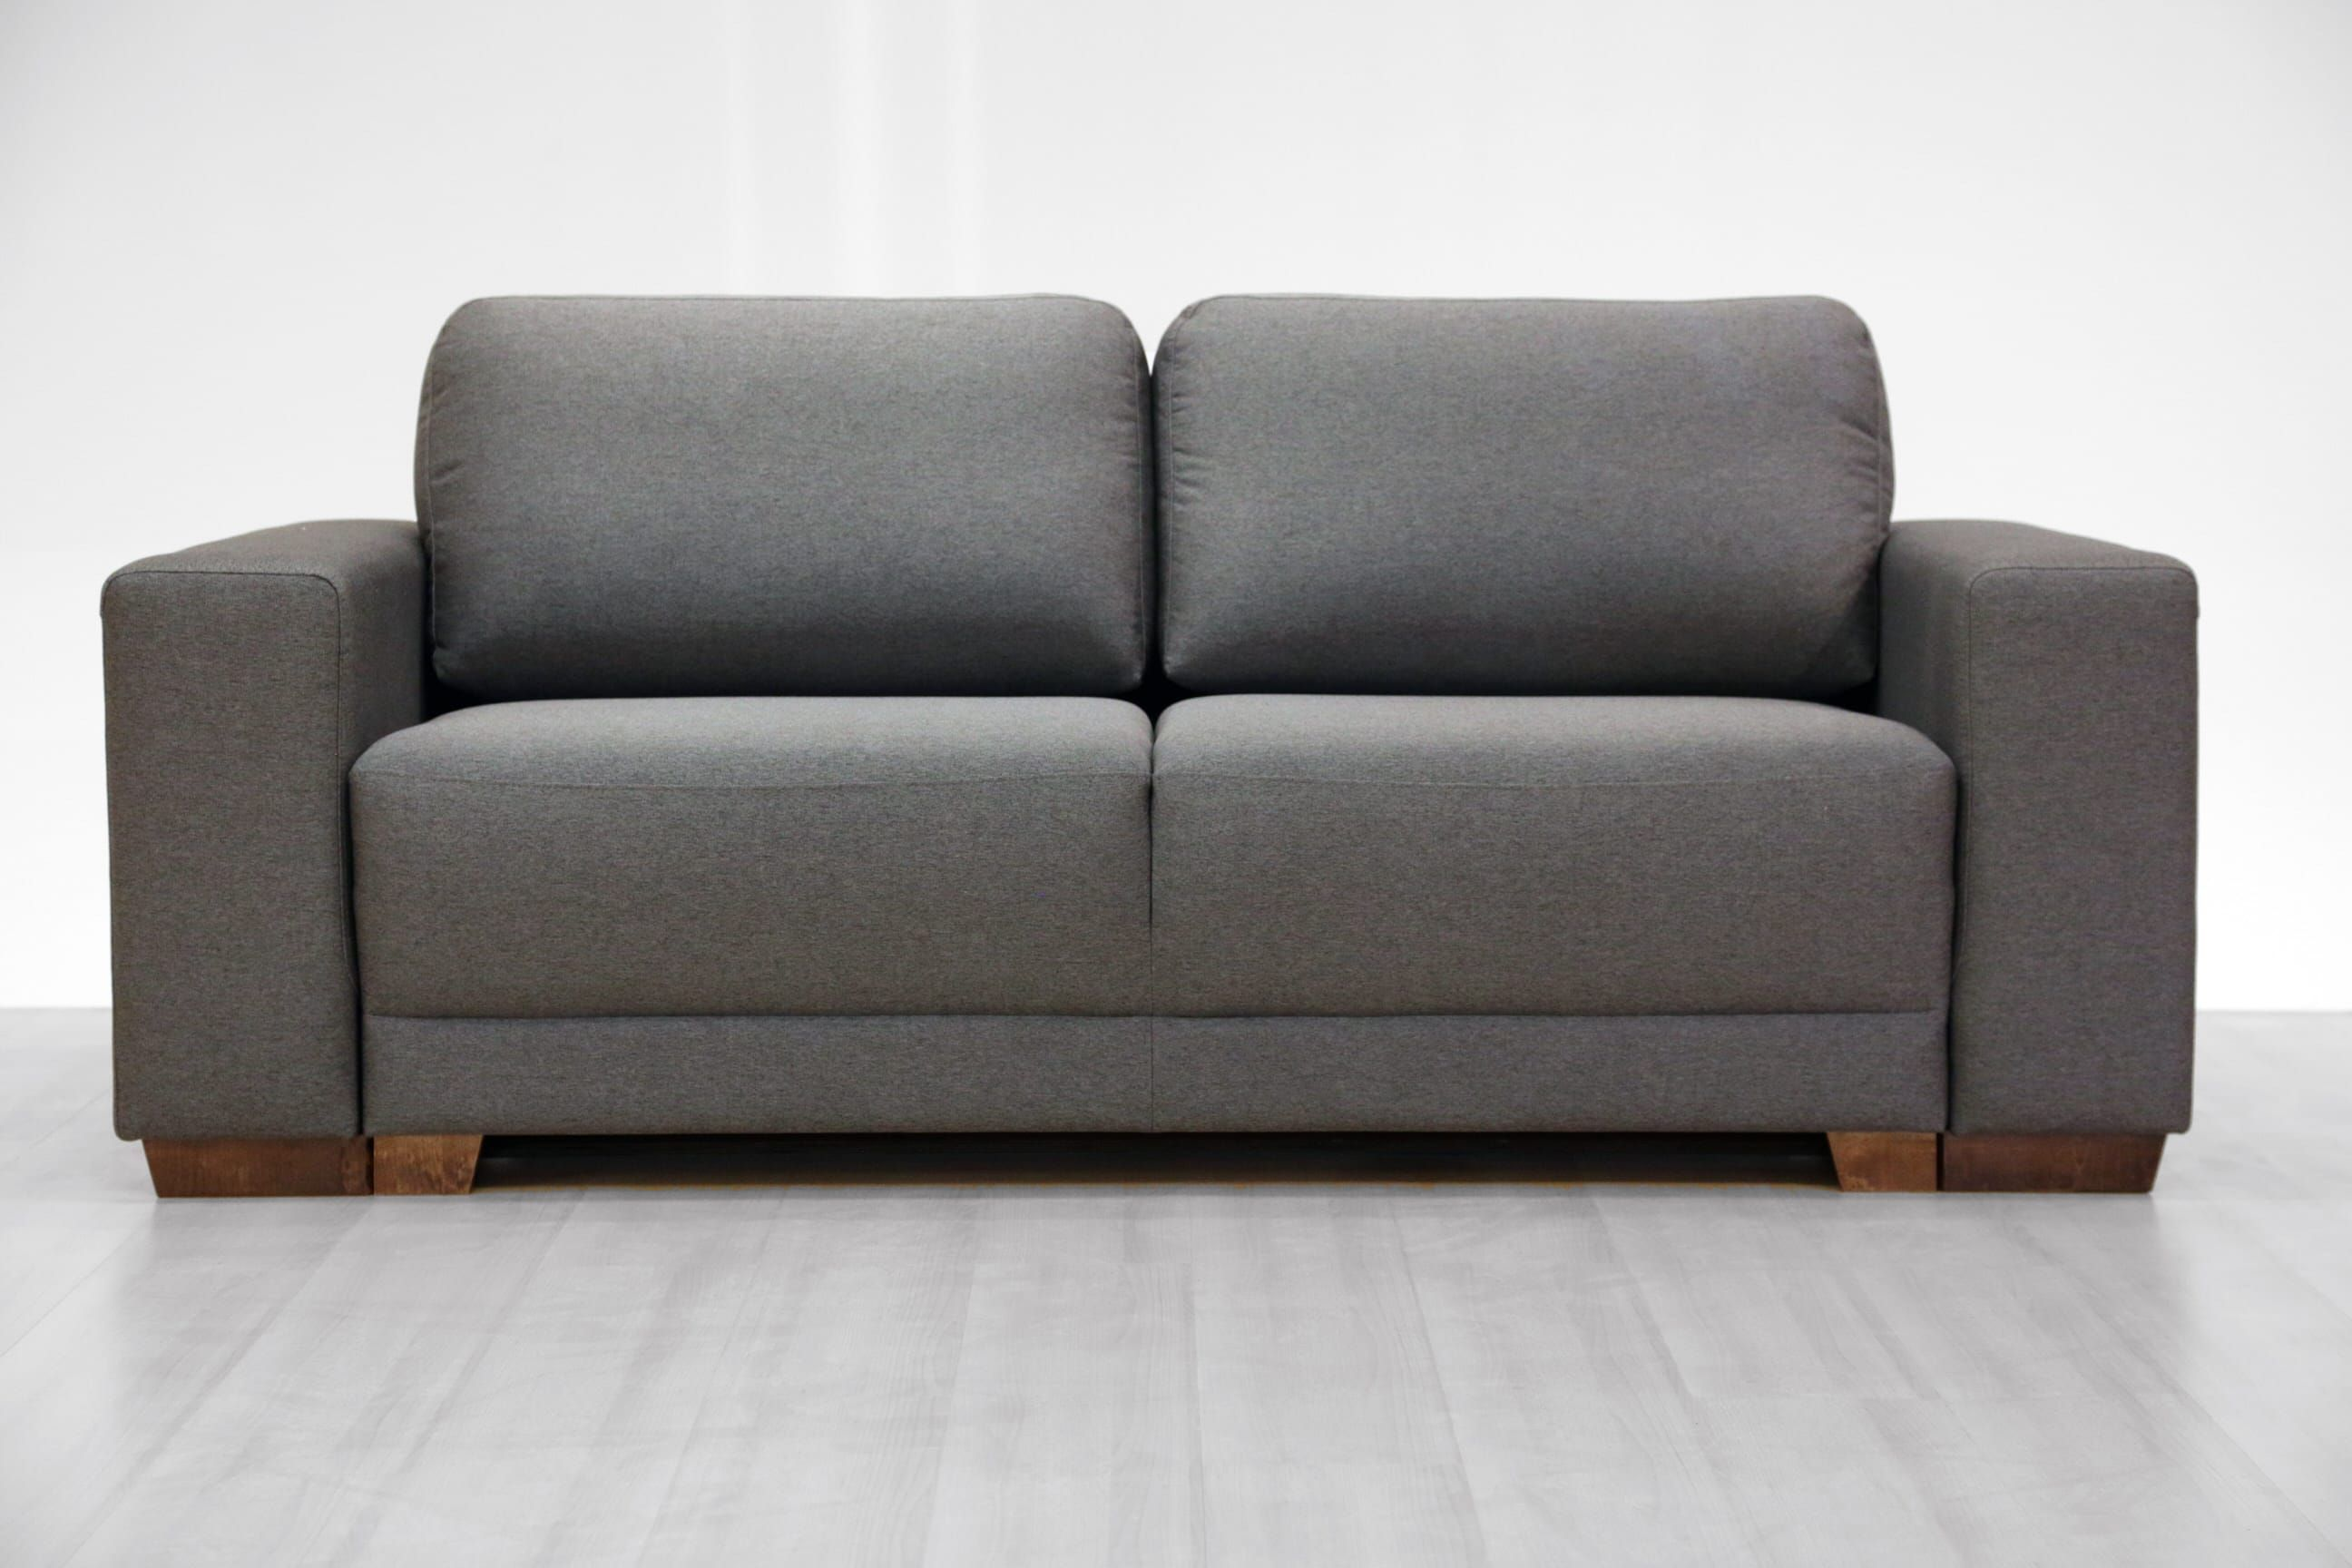 Toronto Loveseat Sleeper Queen Size